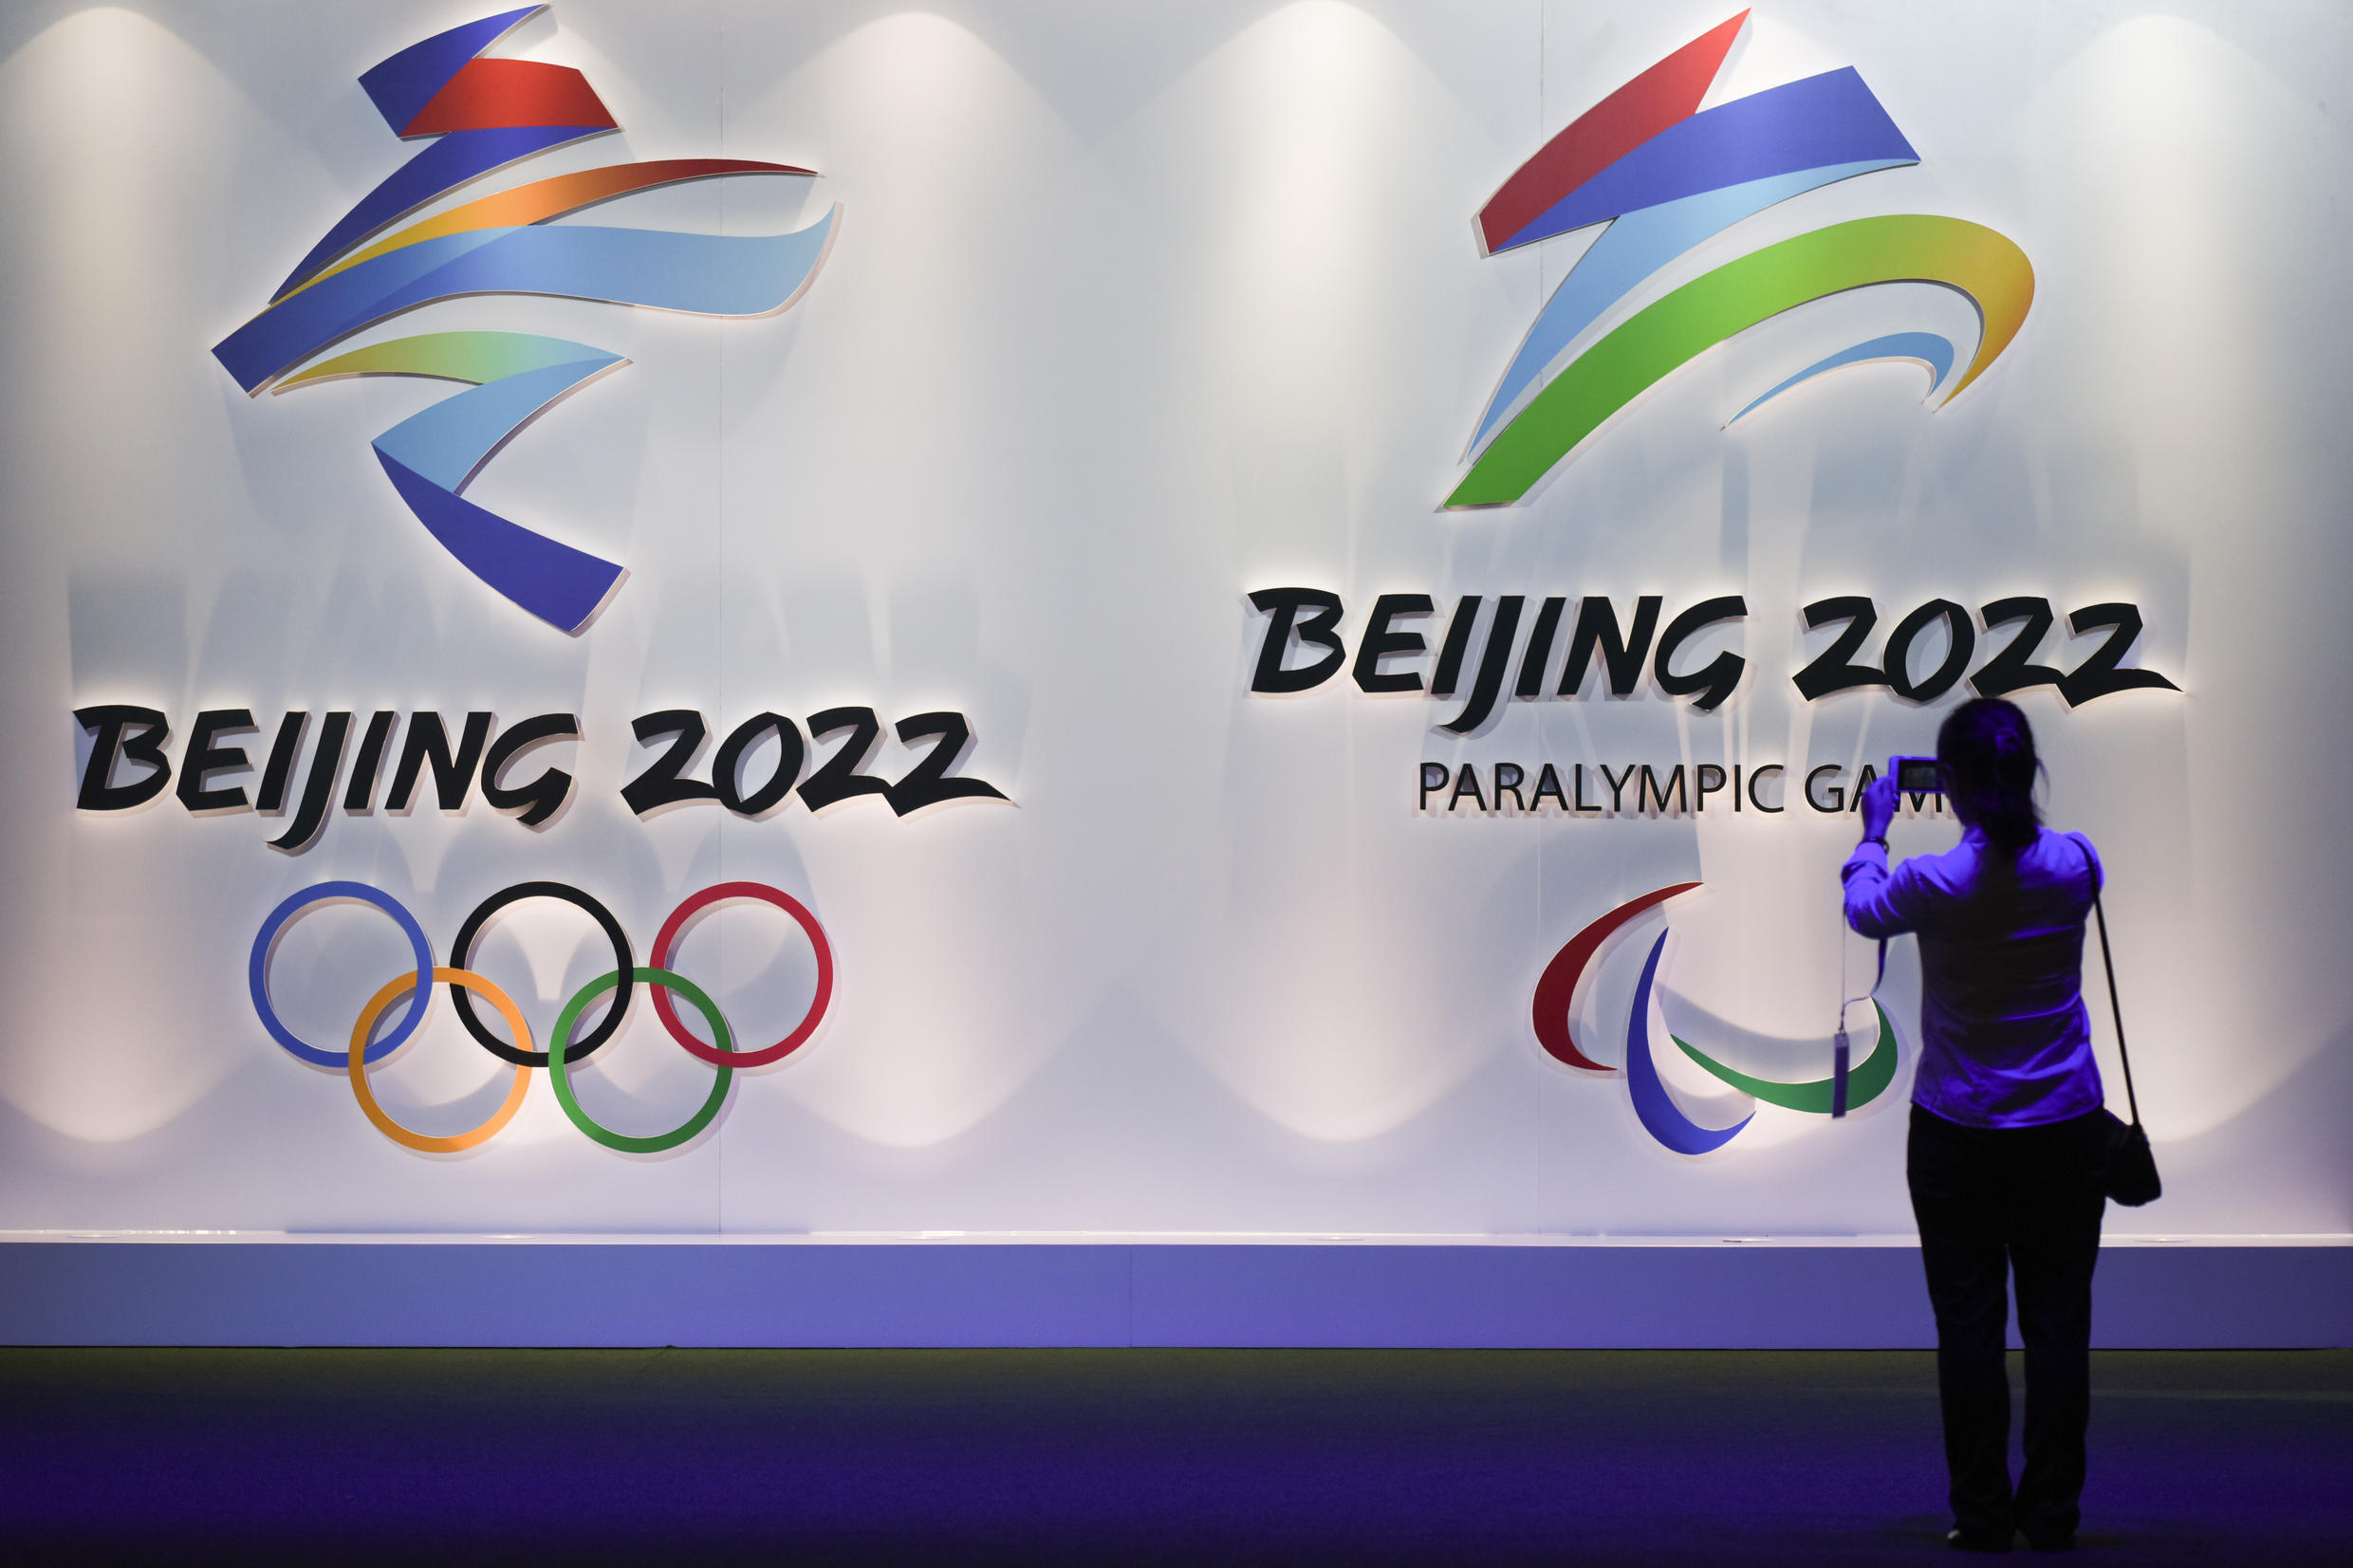 Human rights groups have urged the IOC to strip Beijing of the 2022 Winter Olympics